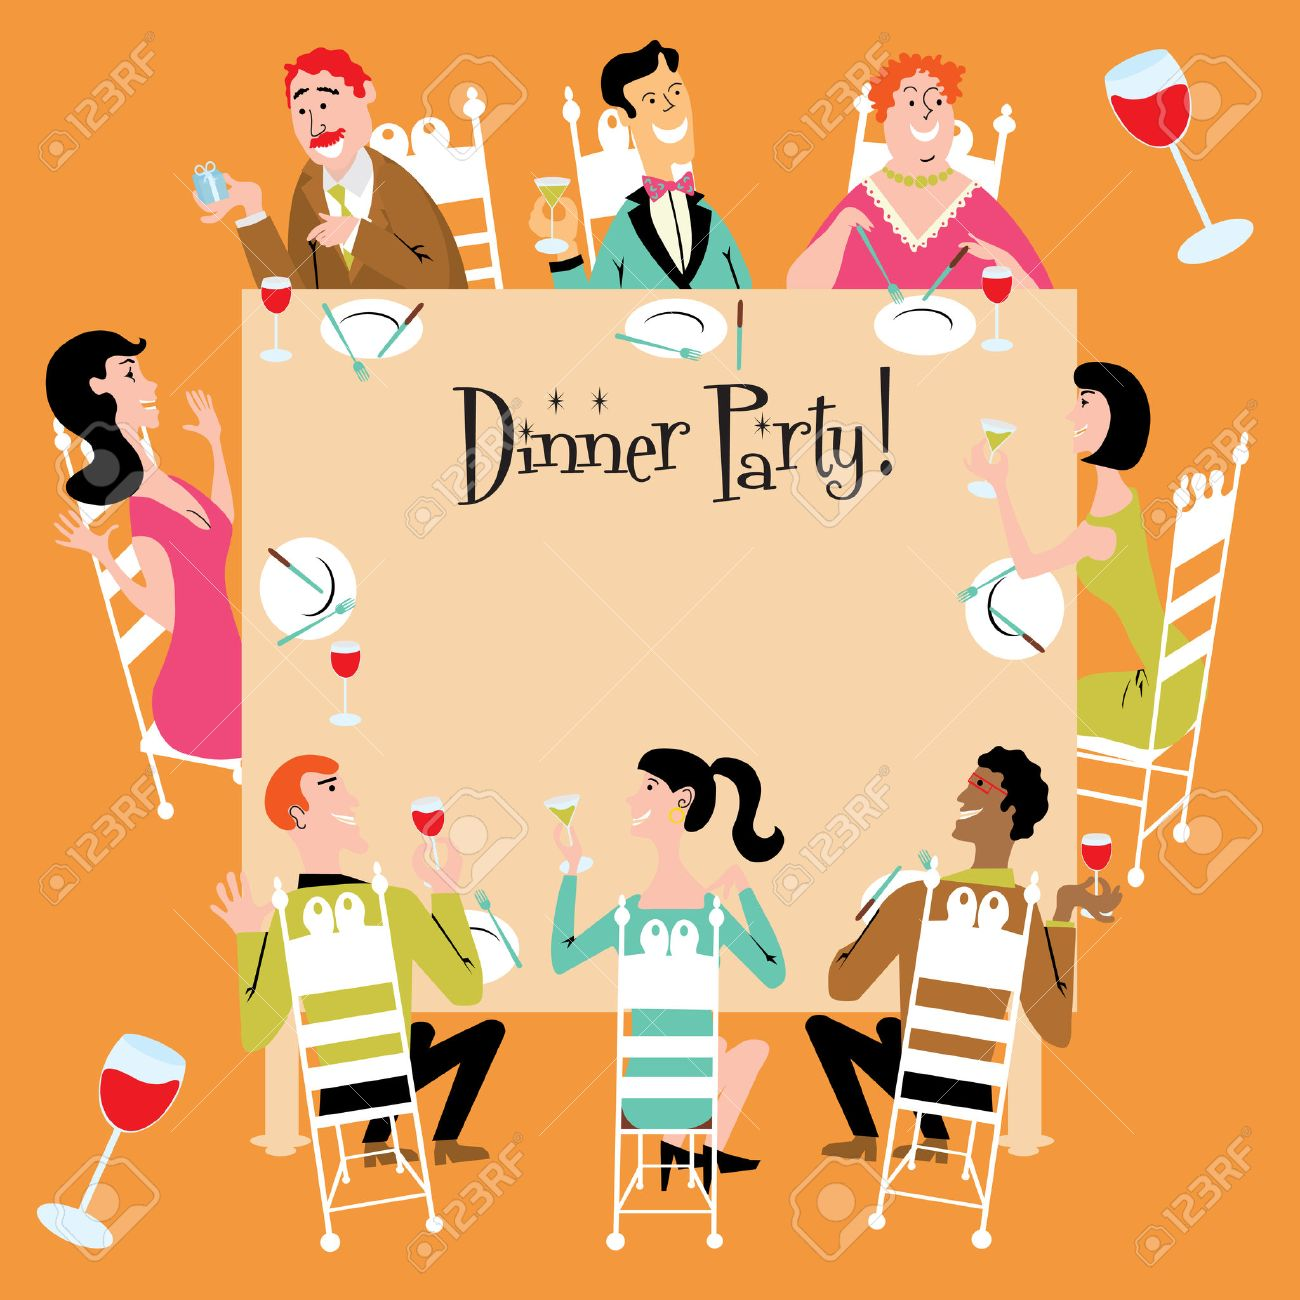 Dinner Party Invitation Royalty Free Cliparts, Vectors, And Stock ...